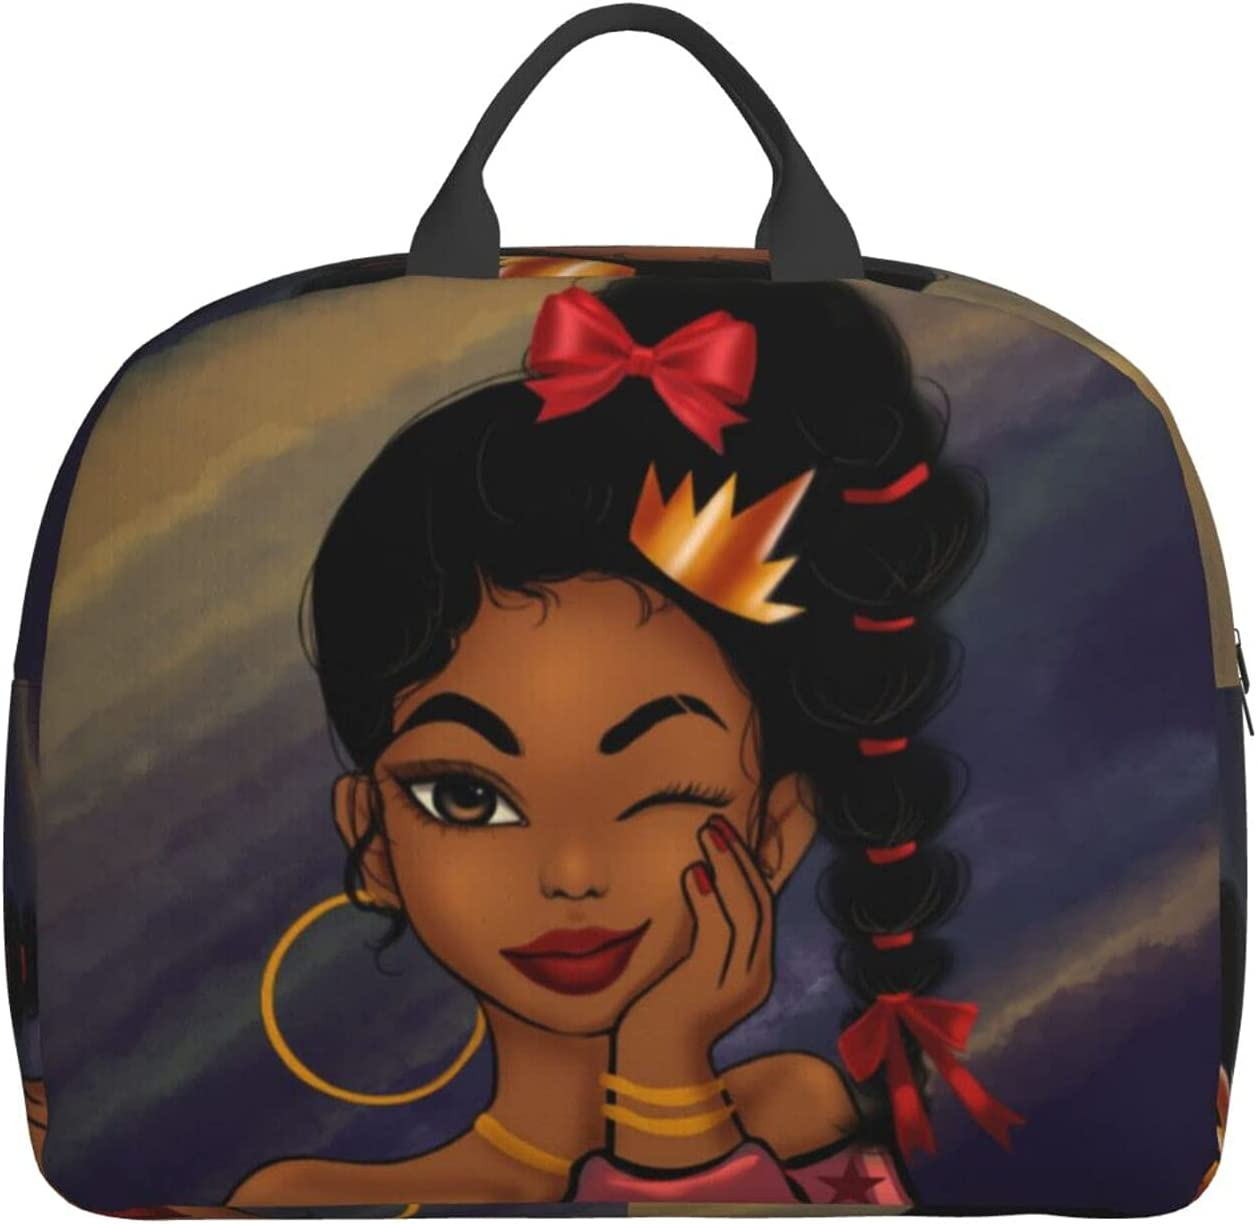 African American Foldable Travel Duffel Luggage Sports Bag Seattle Mall Gym B Spring new work one after another